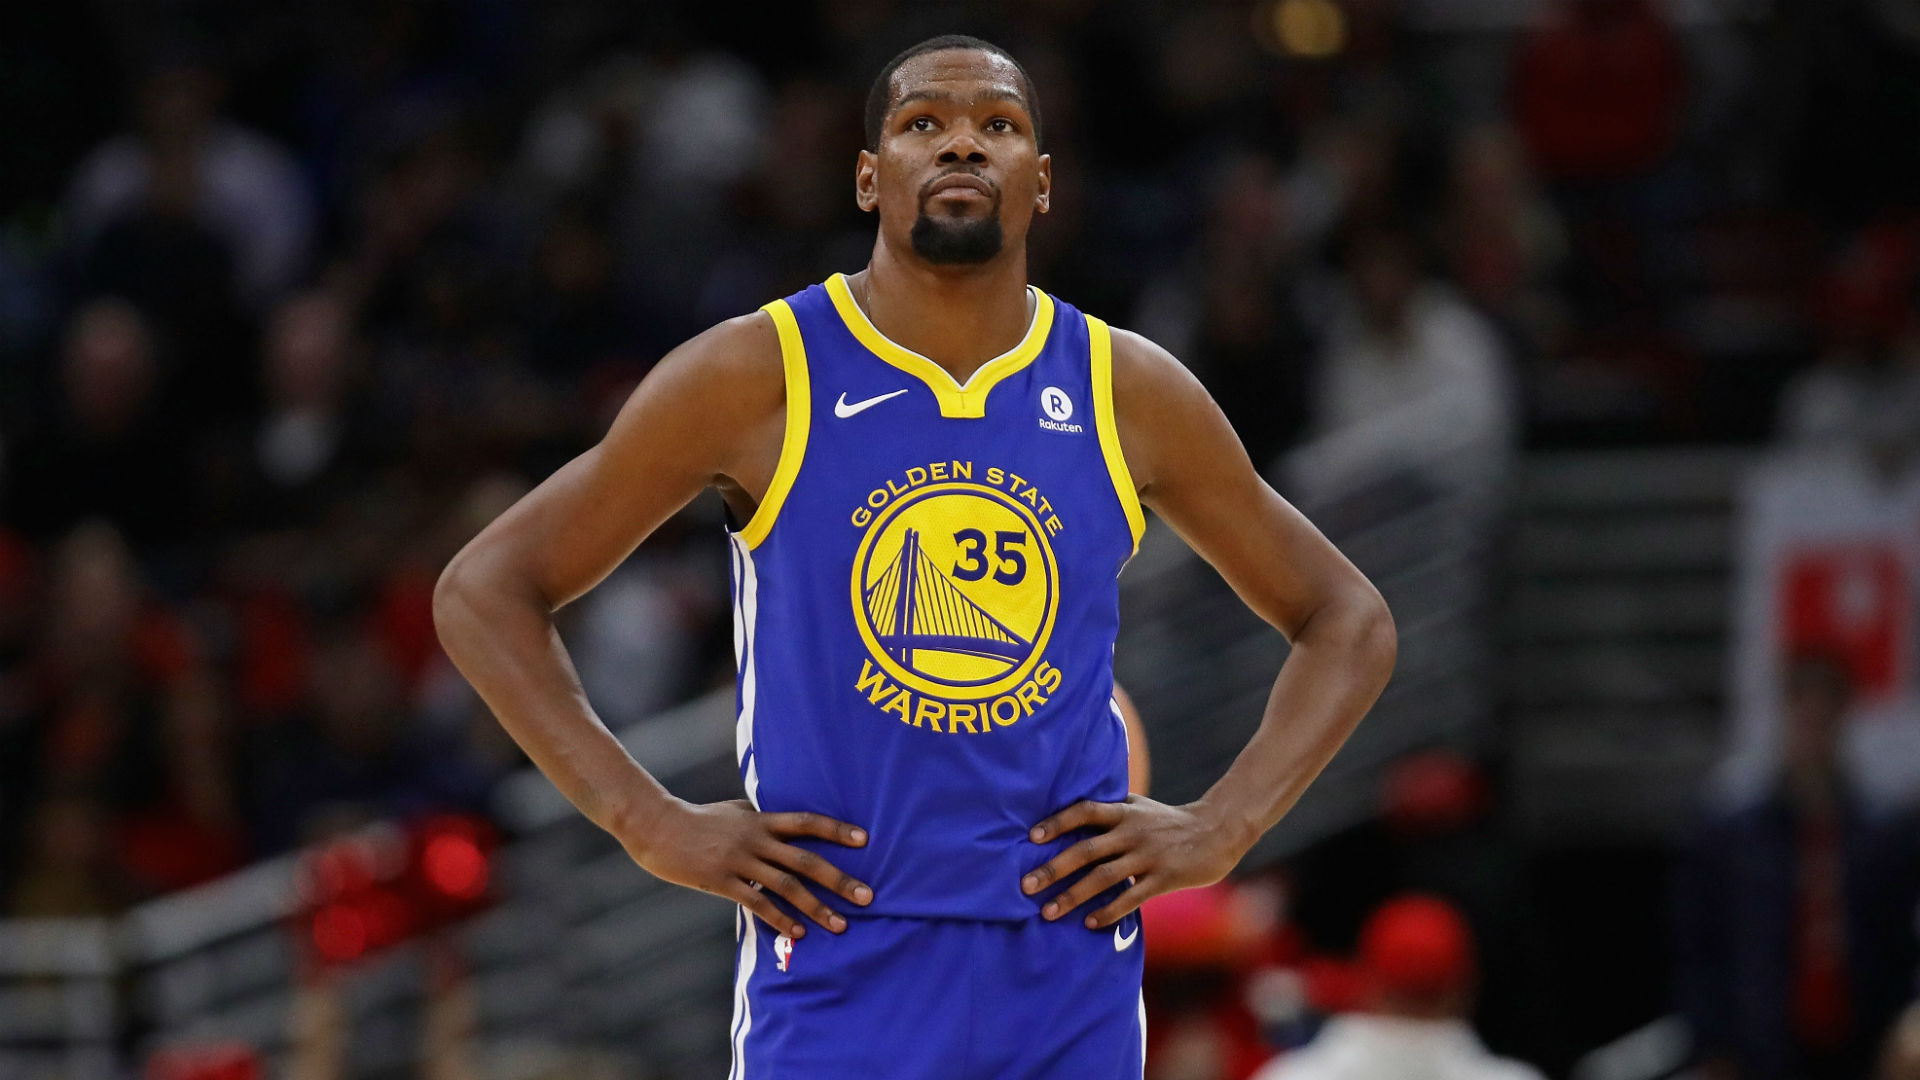 Kevin Durant to become unrestricted free agent, rework contract with Warriors